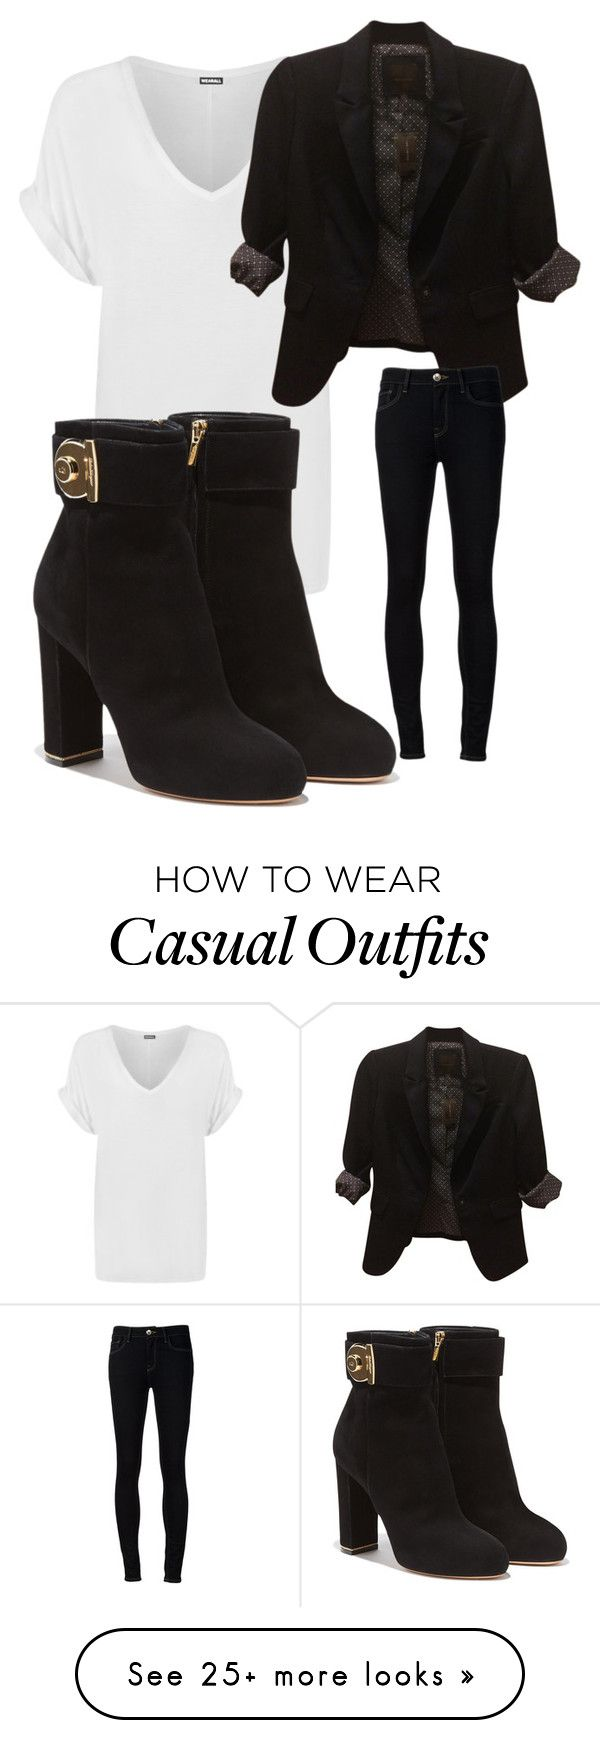 """""""Casual Yet Put Together"""" By Leeleeshantay On Polyvore"""